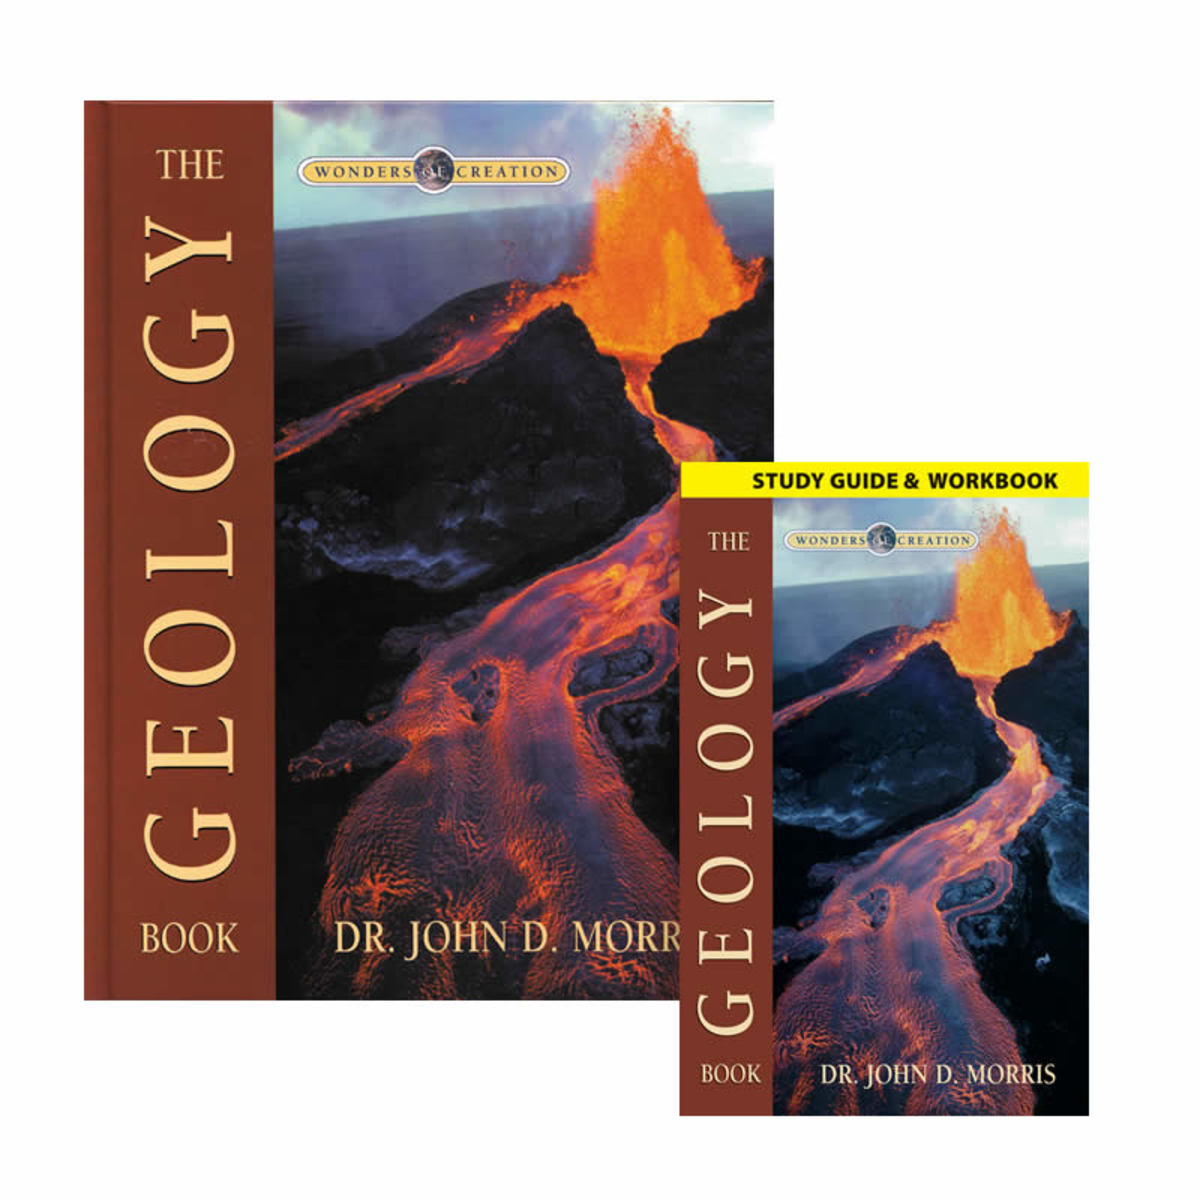 The Geology Book (Wonders of Creation) by John D Morris - Image is from https://answersingenesis.org/